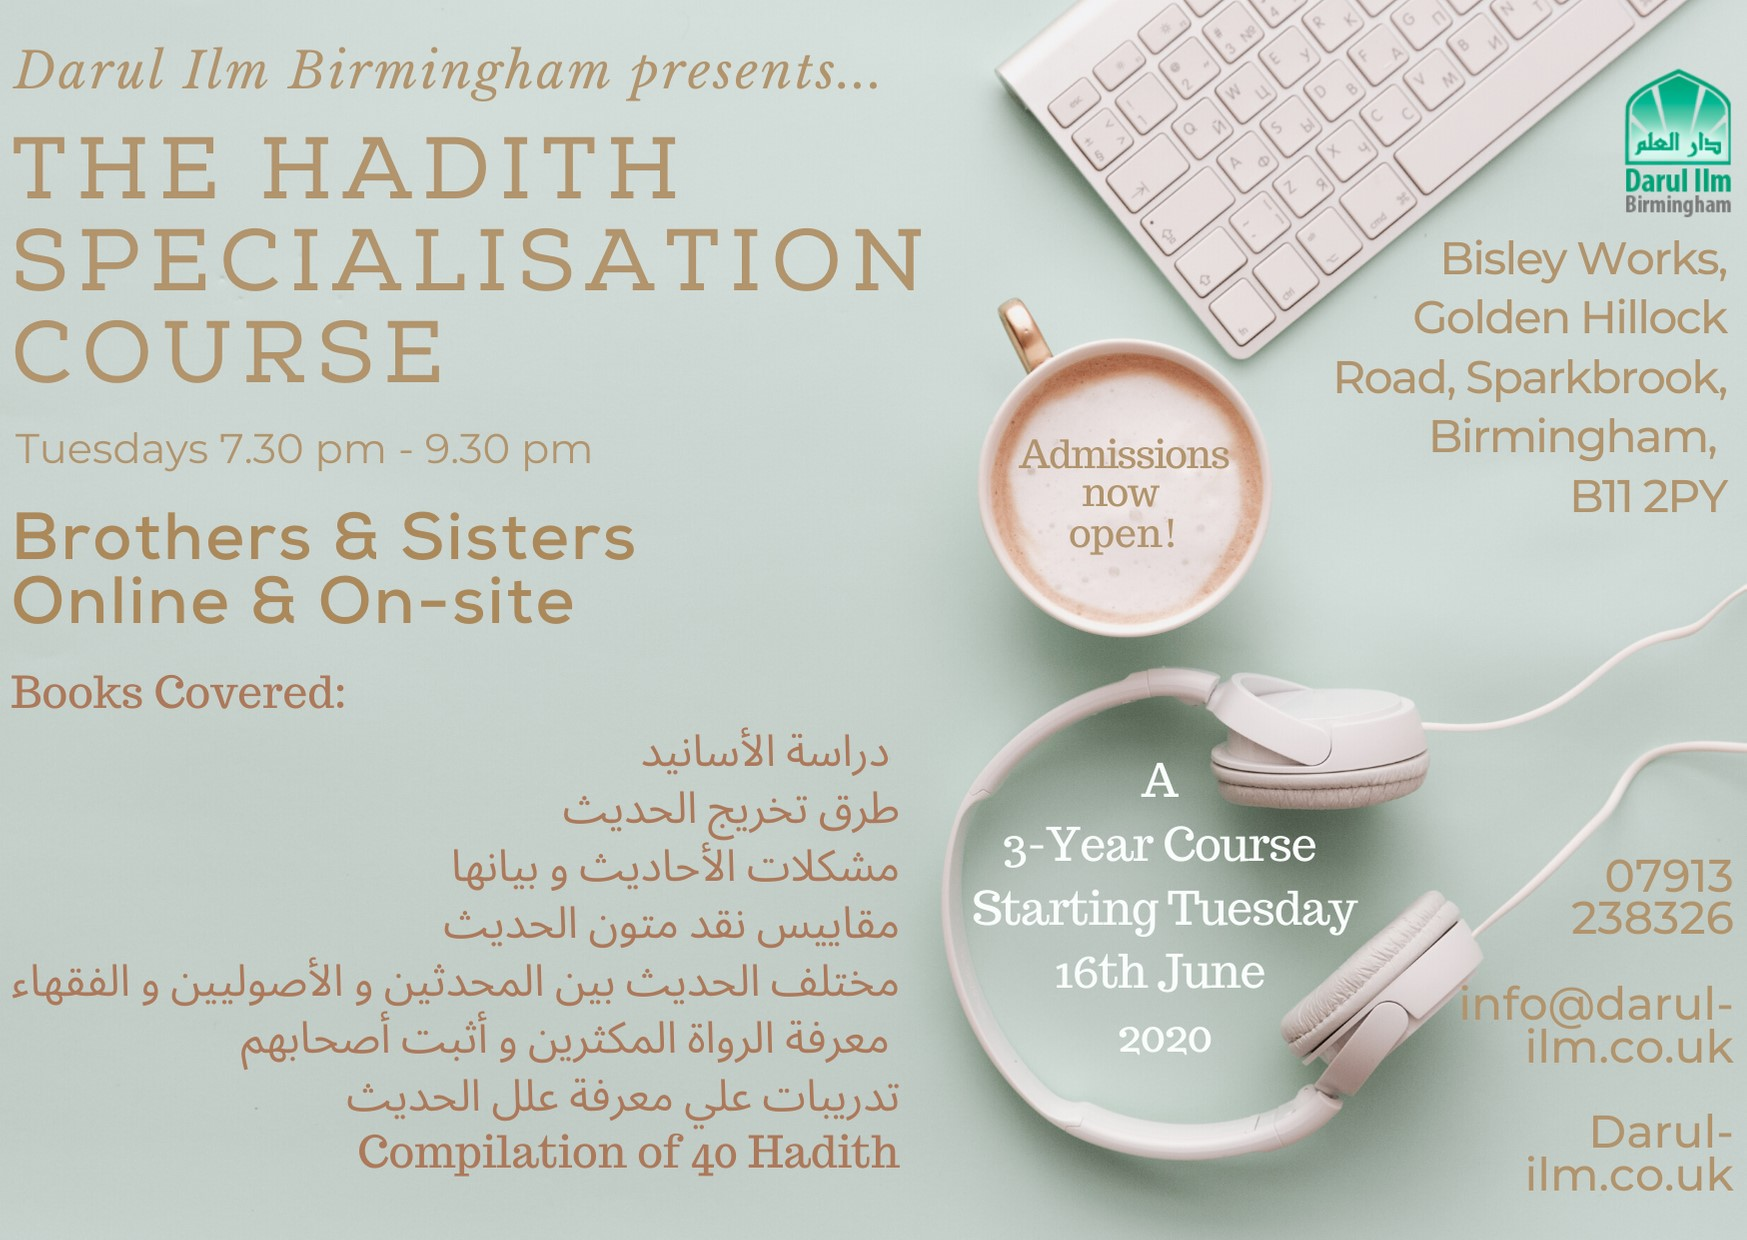 The Hadith Specialisation Course